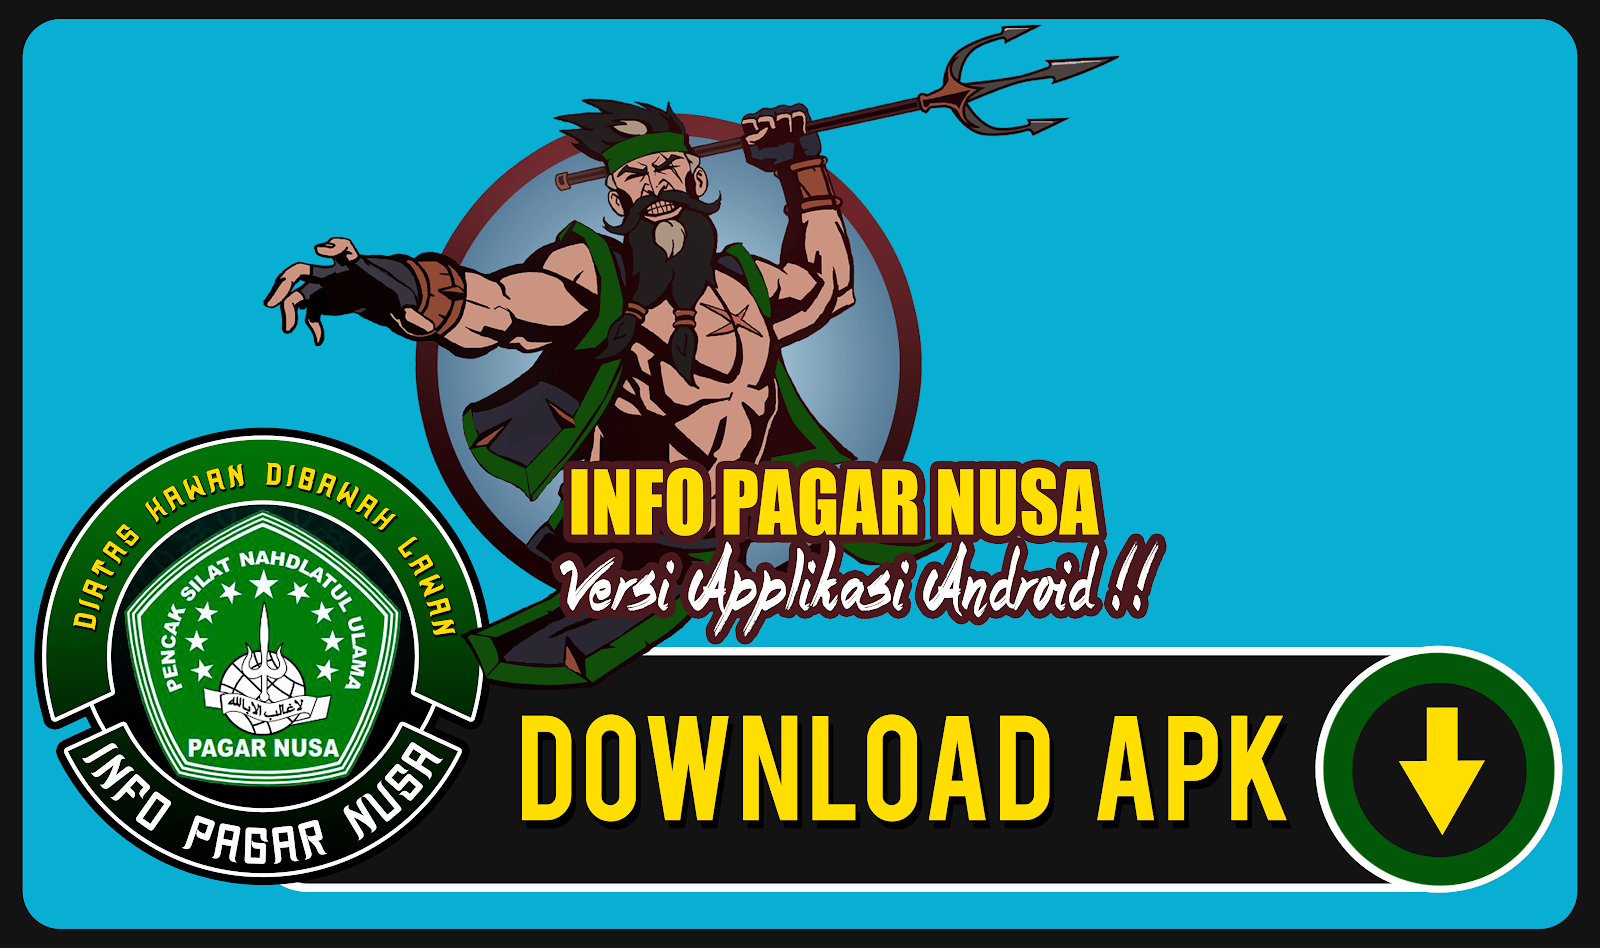 Download APK Info Pagar Nusa